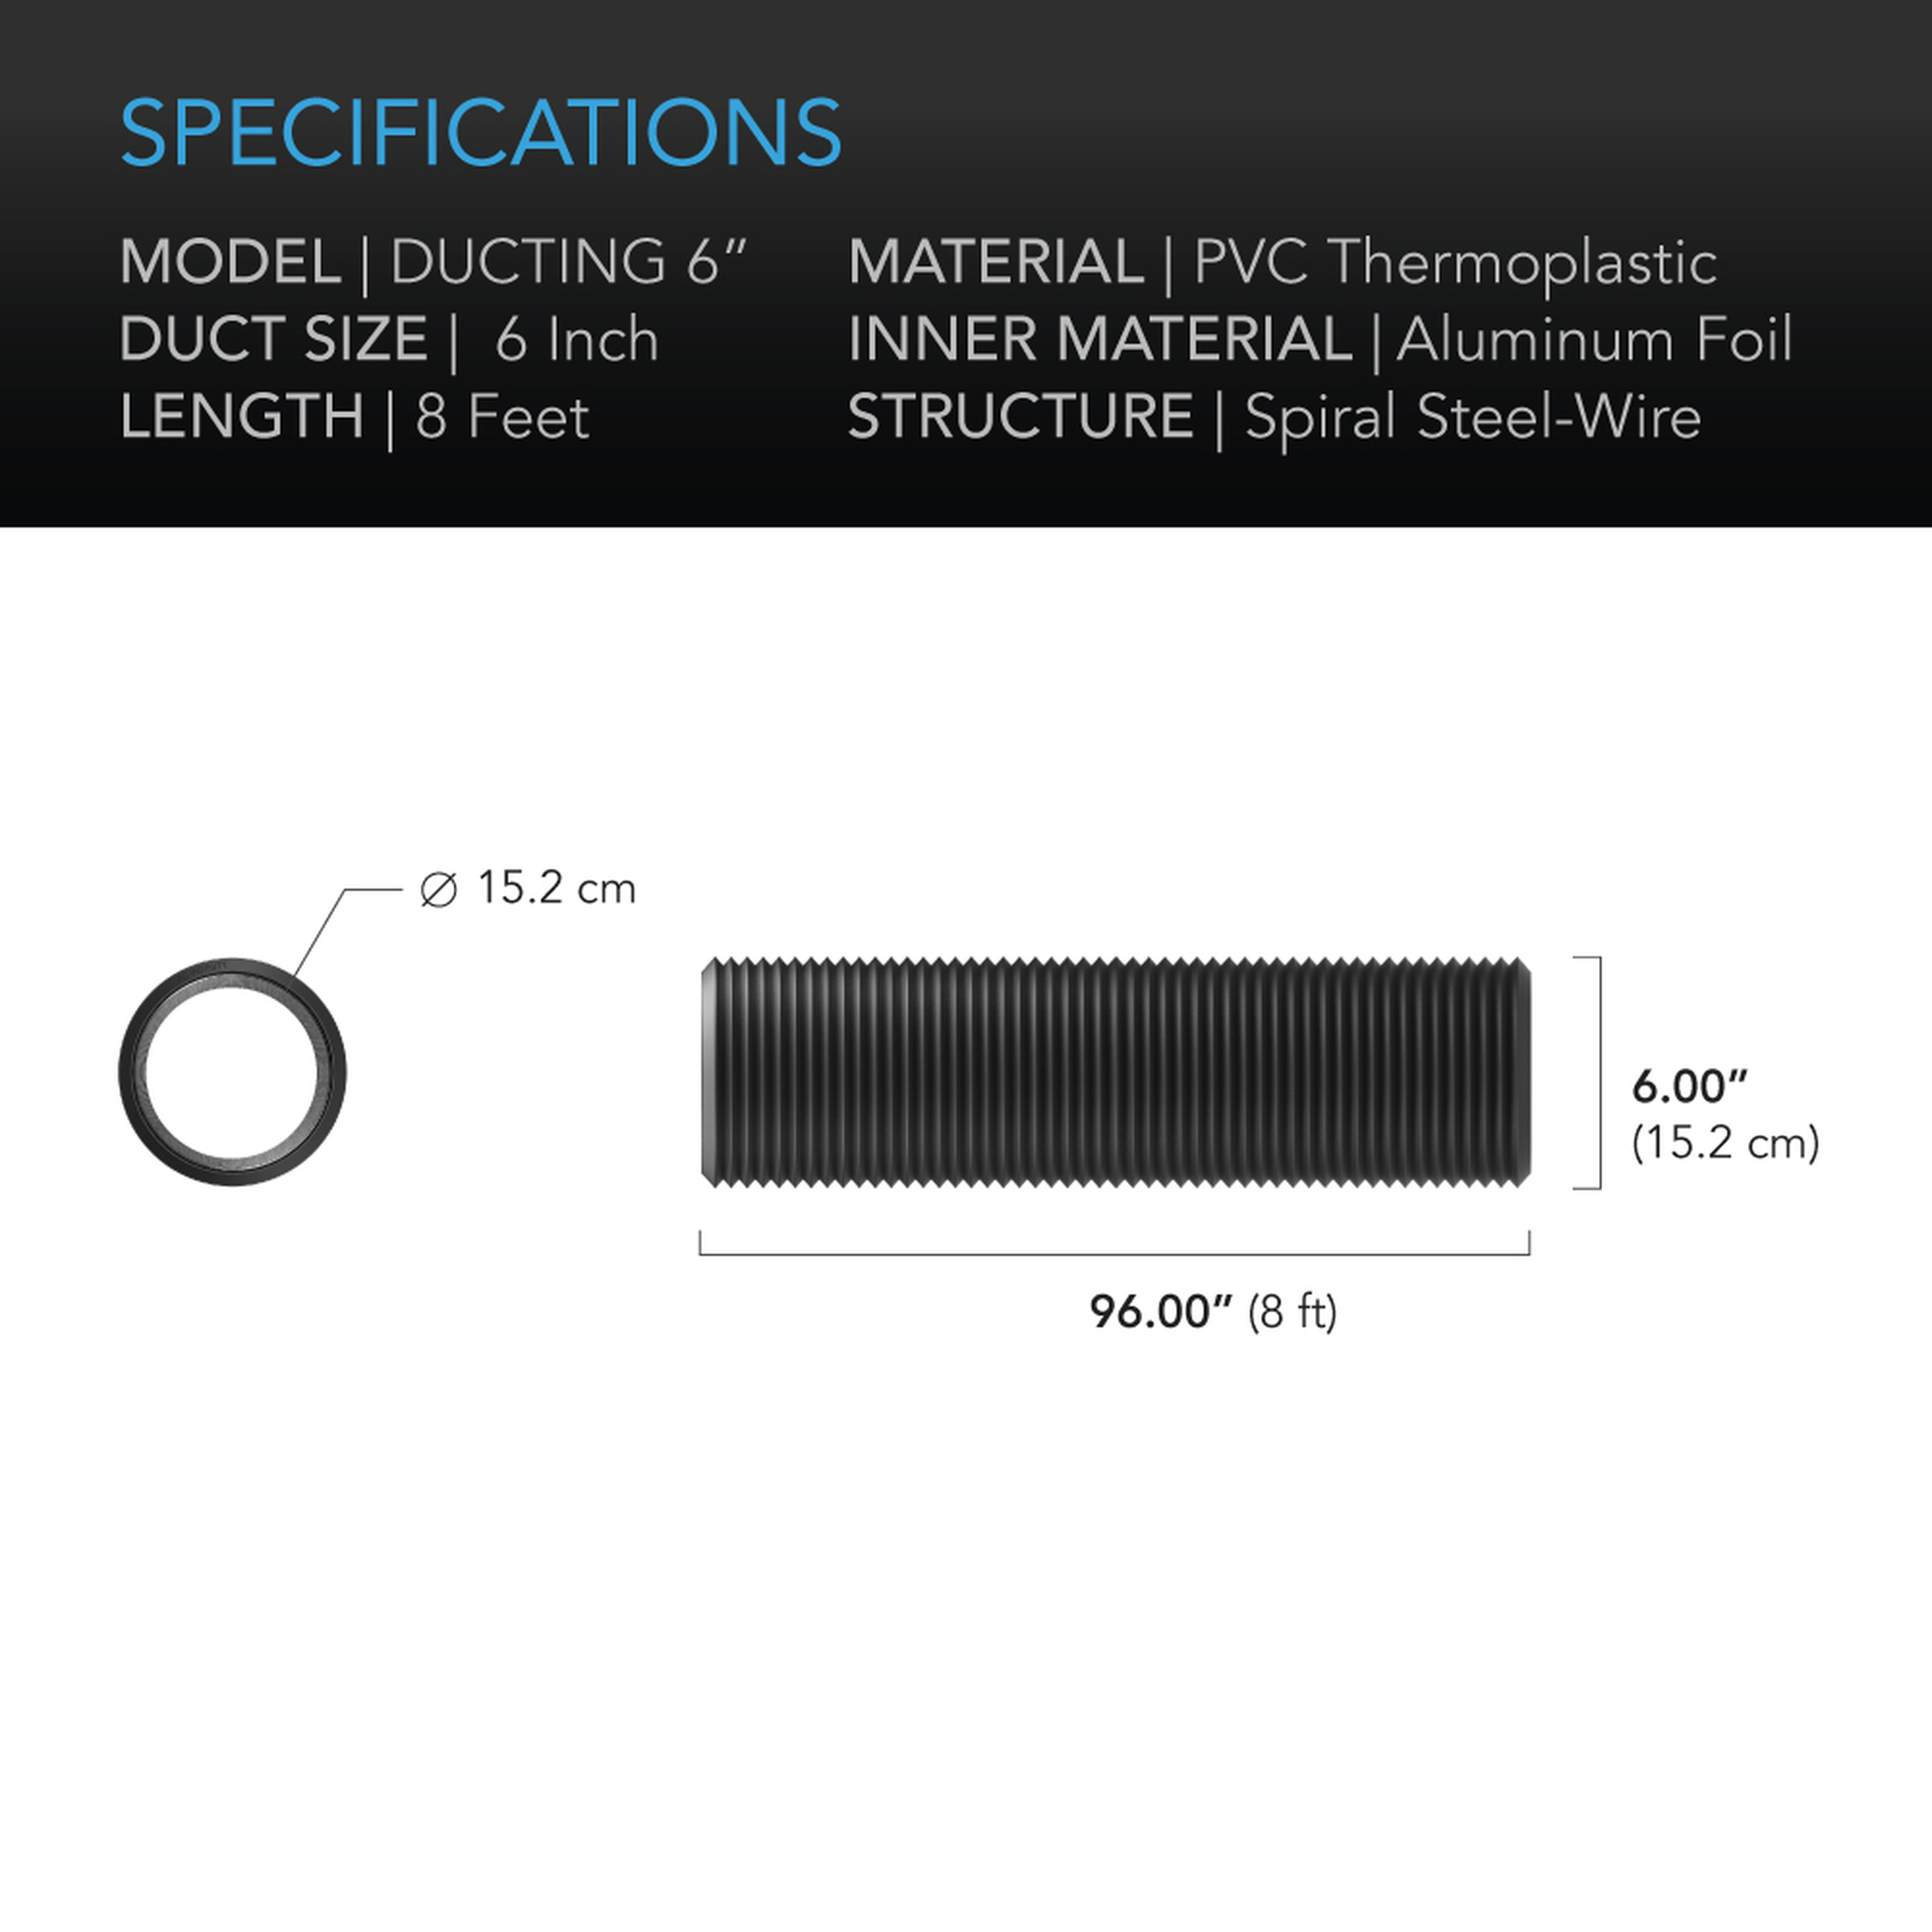 Duct tube 6 8' Specifications